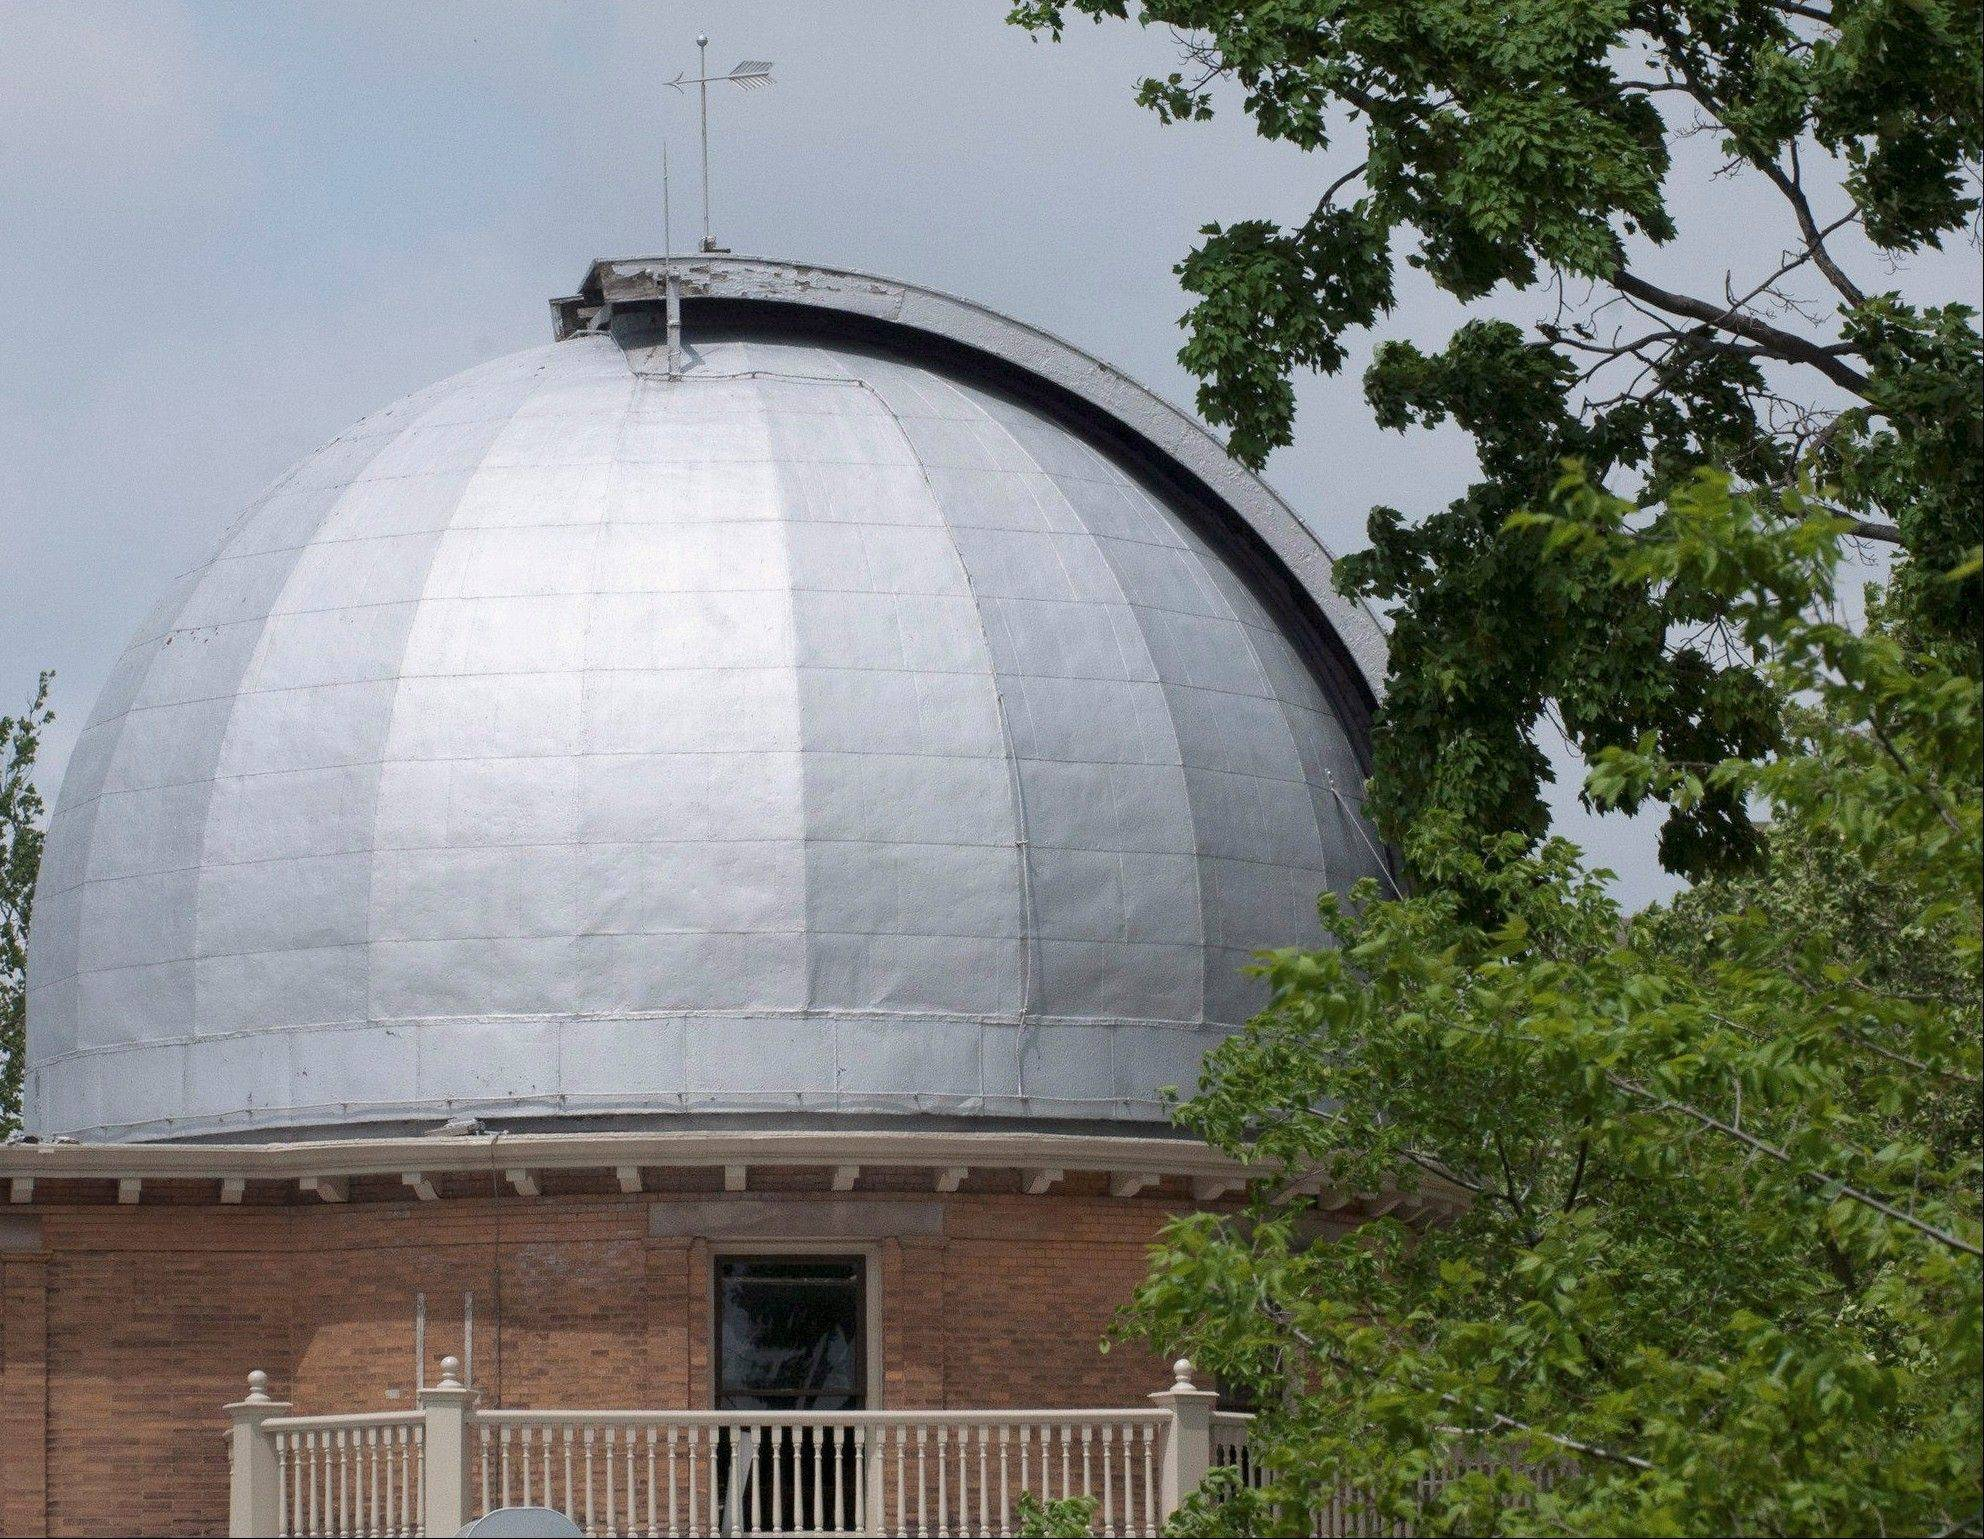 Restoration work on the telescope in the University of Illinois observatory has been completed.